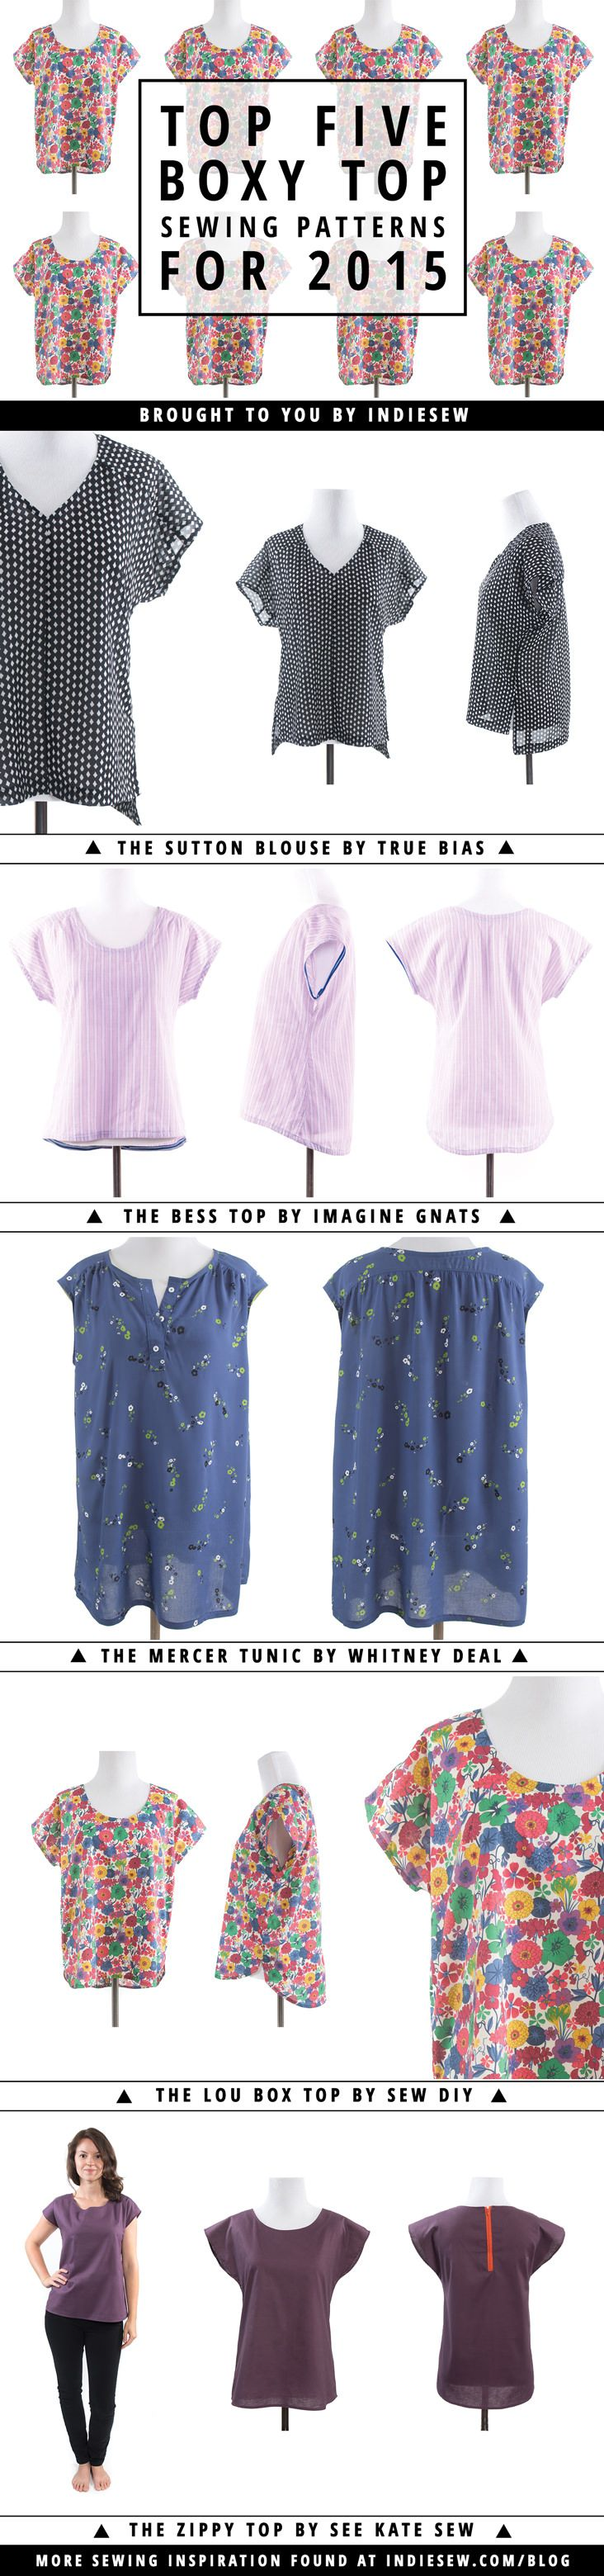 Top Five Boxy Top Sewing Patterns for 2015 | Sewing patterns ...